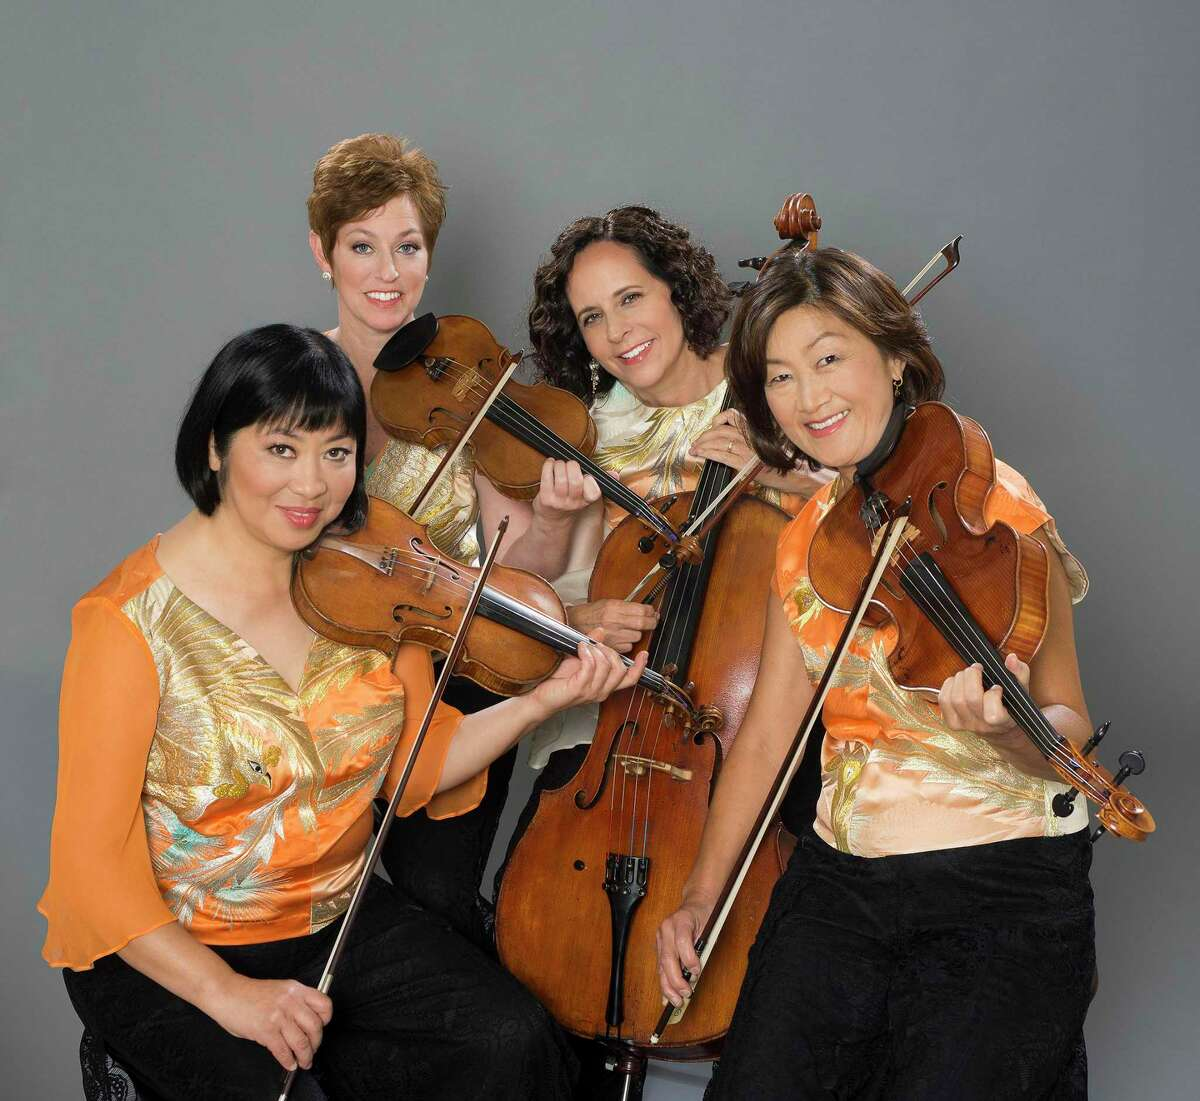 The Treetops Chamber Music Society is hosting the internationally acclaimed Cassatt String Quartet, pictured, and pianist Magdalena Baczewska at the Carriage Barn Arts Center in New Canaan on October 6.